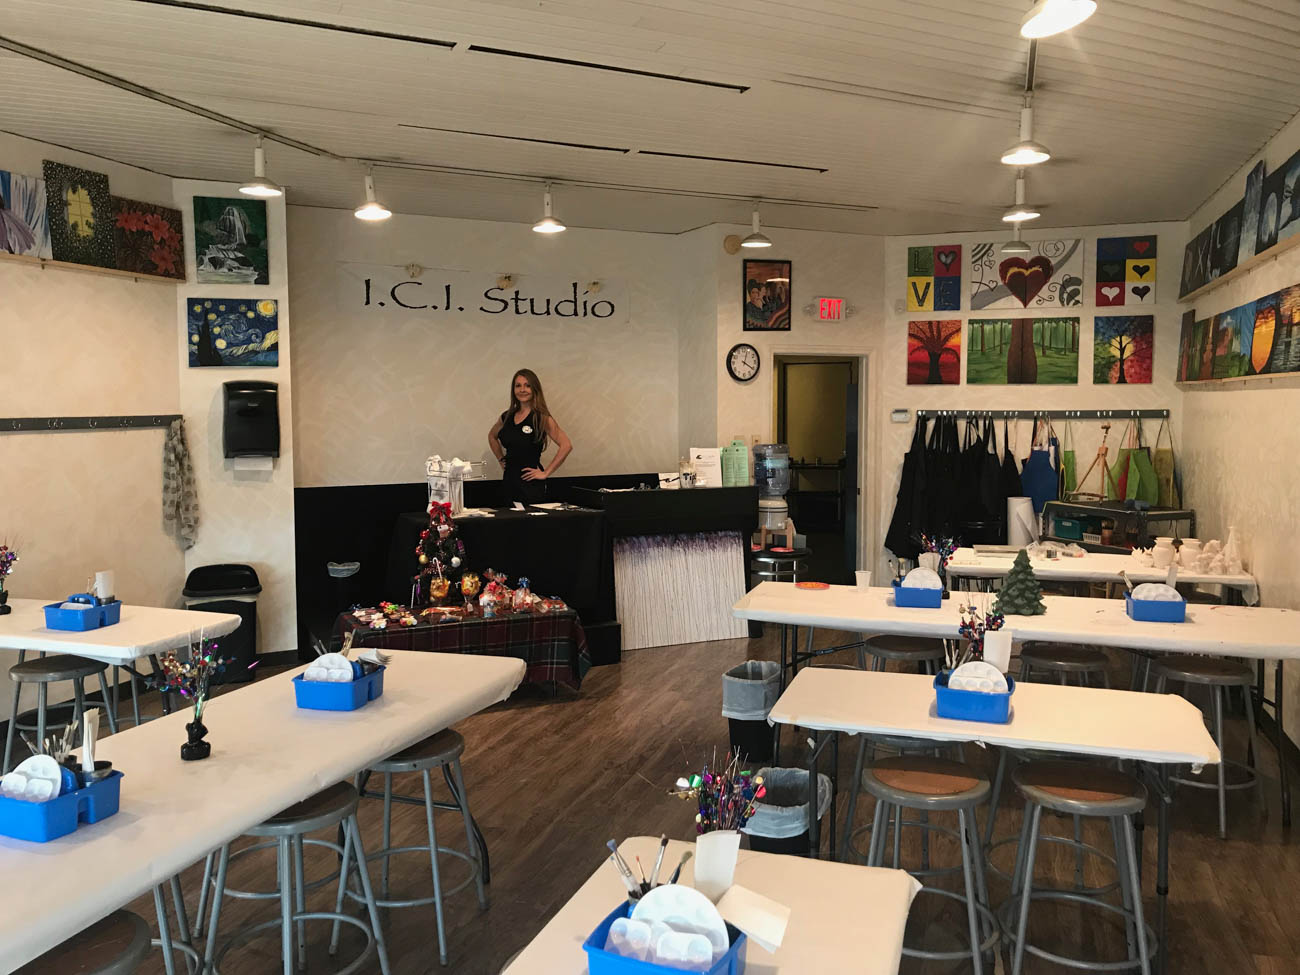 PLACE: I.C.I. Studio / ADDRESS: 10754 Montgomery Road (45242) / I.C.I. stands for 'Imagine. Create. Inspire.' This locally-owned Montgomery studio is one of a few full-service studios in Cincinnati. Artists can stop by during open studio hours to be creative if they need an art space or might be having trouble finding inspiration at home. The open studio fee is $5 and all kinds of tools and materials are provided at the artists' disposal—no reservation necessary. But there are also paint classes and events held here, too, including painting on pottery with a glaze, glass painting with enamel, and wood and canvas painting with acrylic paint. I.C.I. is a community-based studio, offering services like school enrichment programs to kids. Private classes, free style studio hours, and corporate events are all BYOB if you are of age. / Image courtesy of I.C.I. Studio // Published: 12.21.18